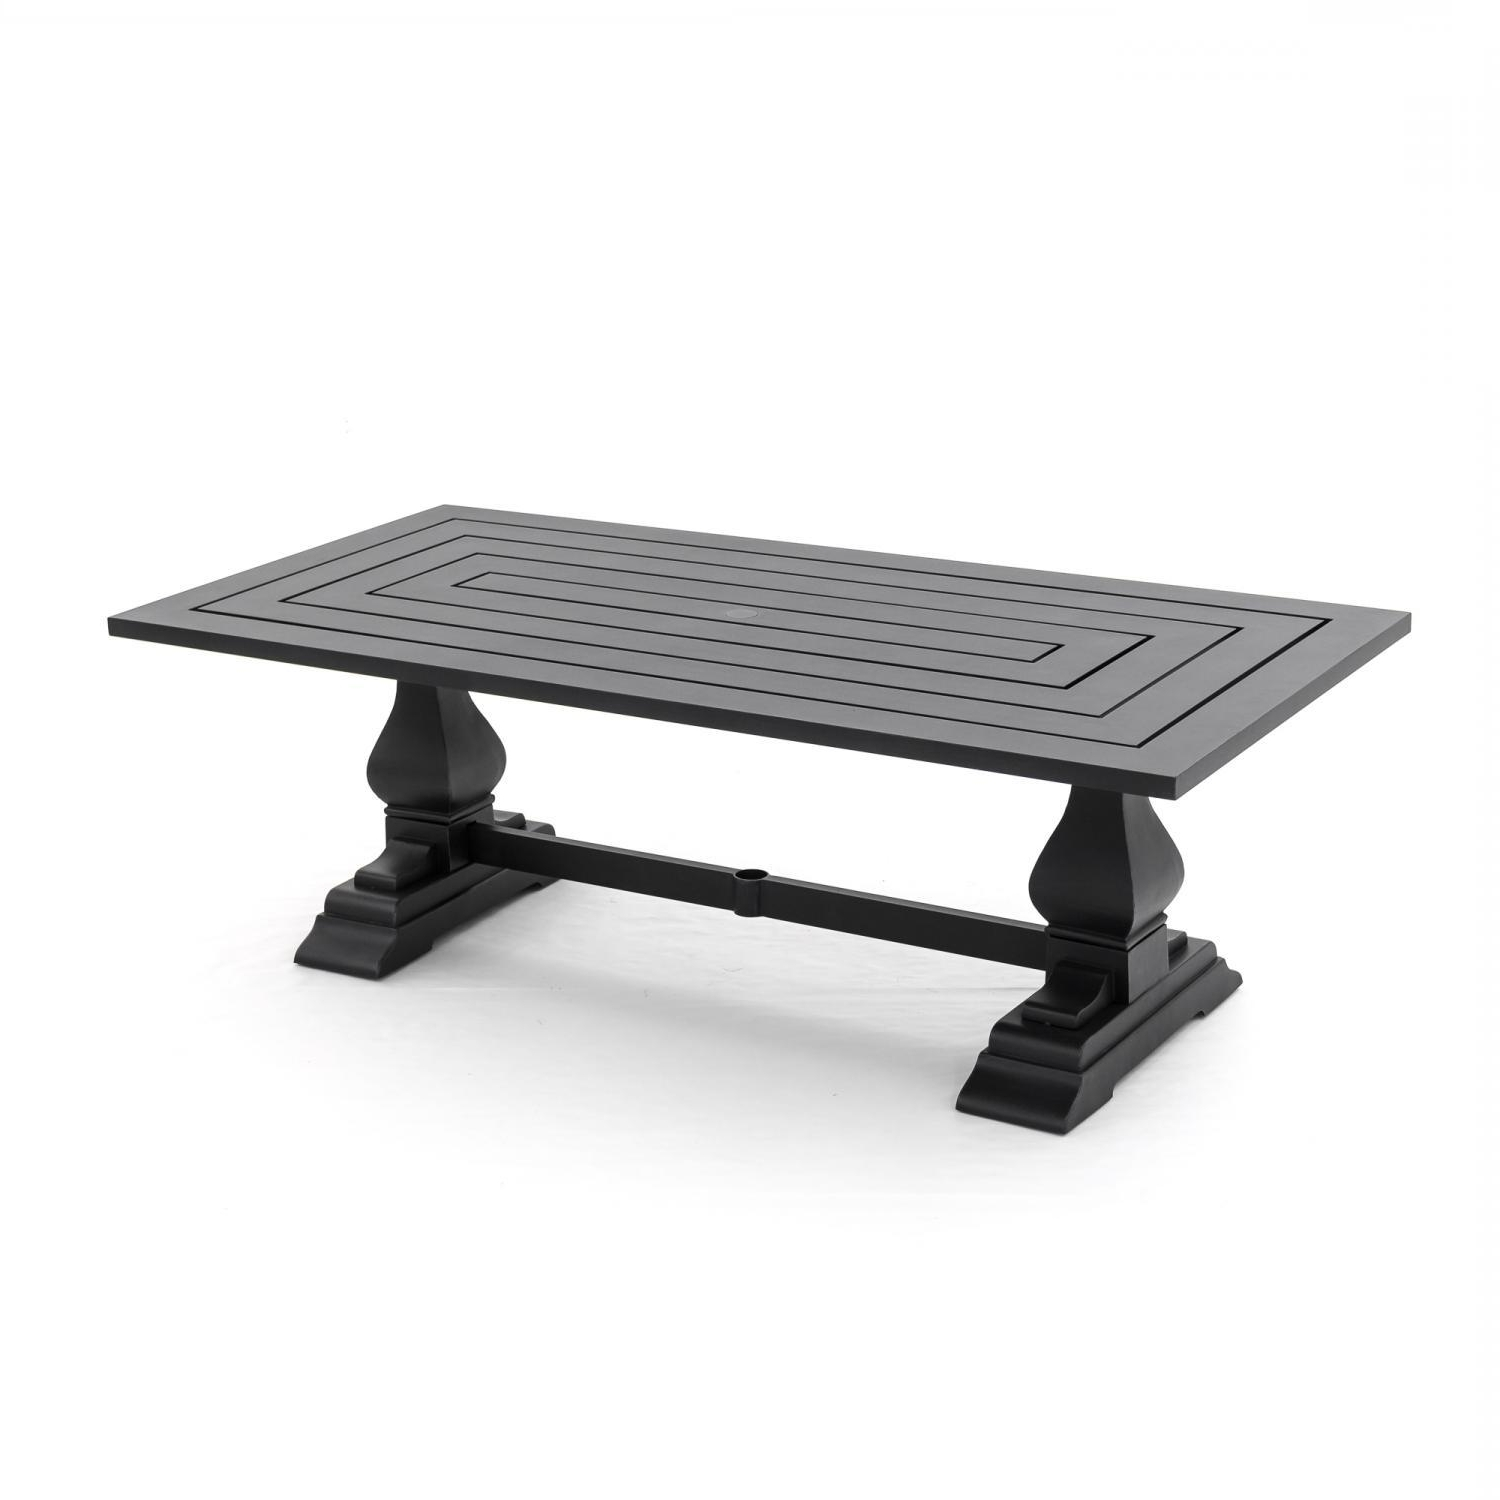 87 Inch Dining Tables pertaining to Best and Newest St. Charles 87 X 42-Inch Cast Aluminum Rectangular Patio Dining